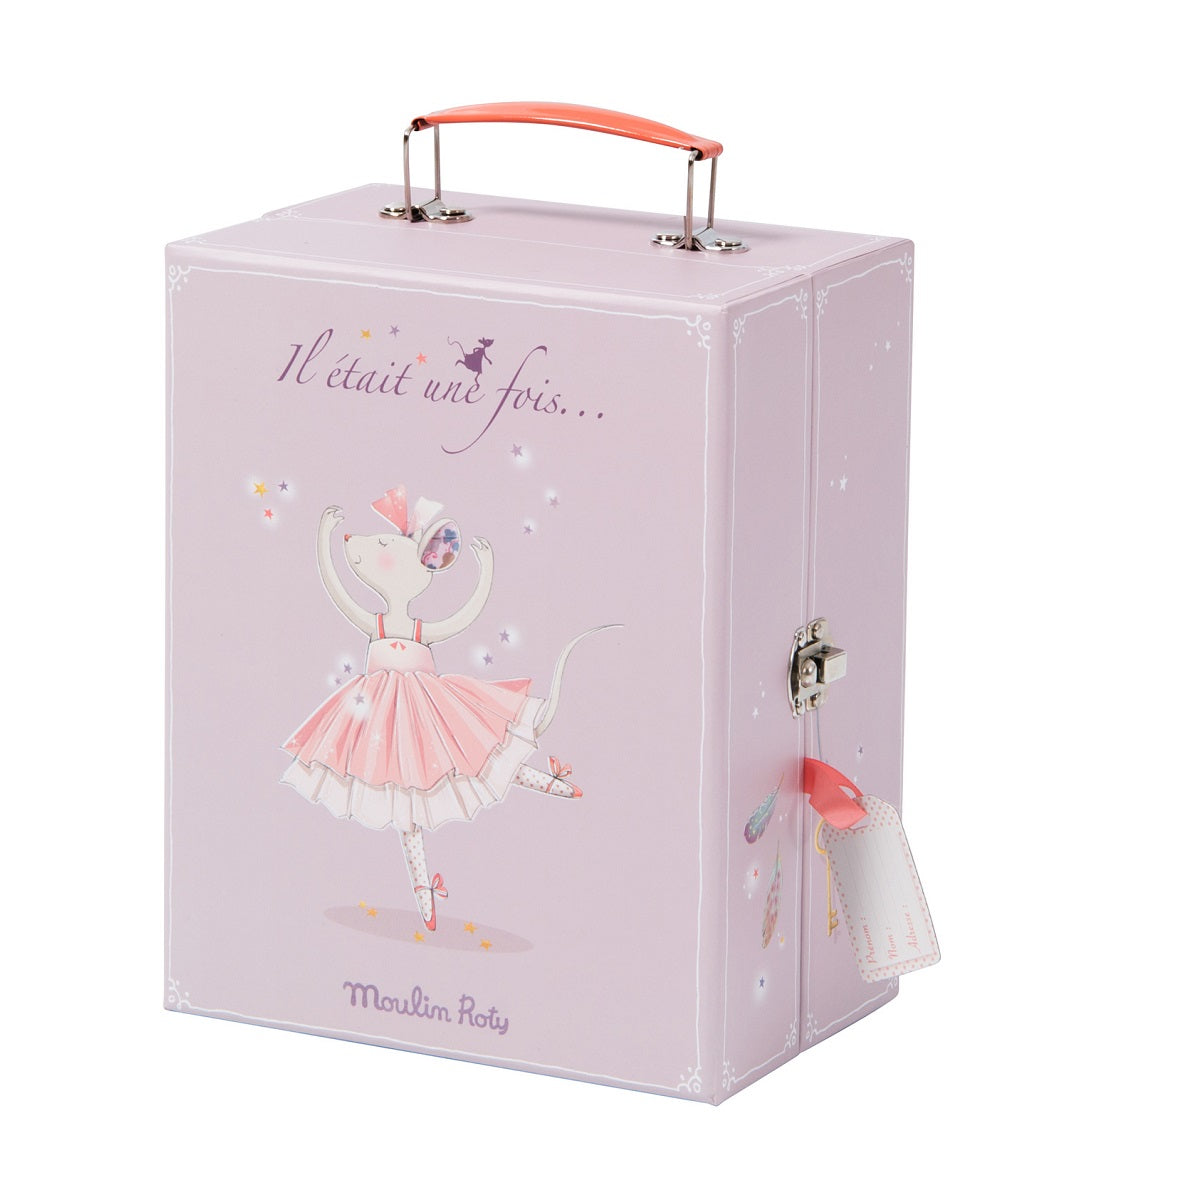 a closed lavendar suitcase box with a ballerina mouse illustrated on the side.